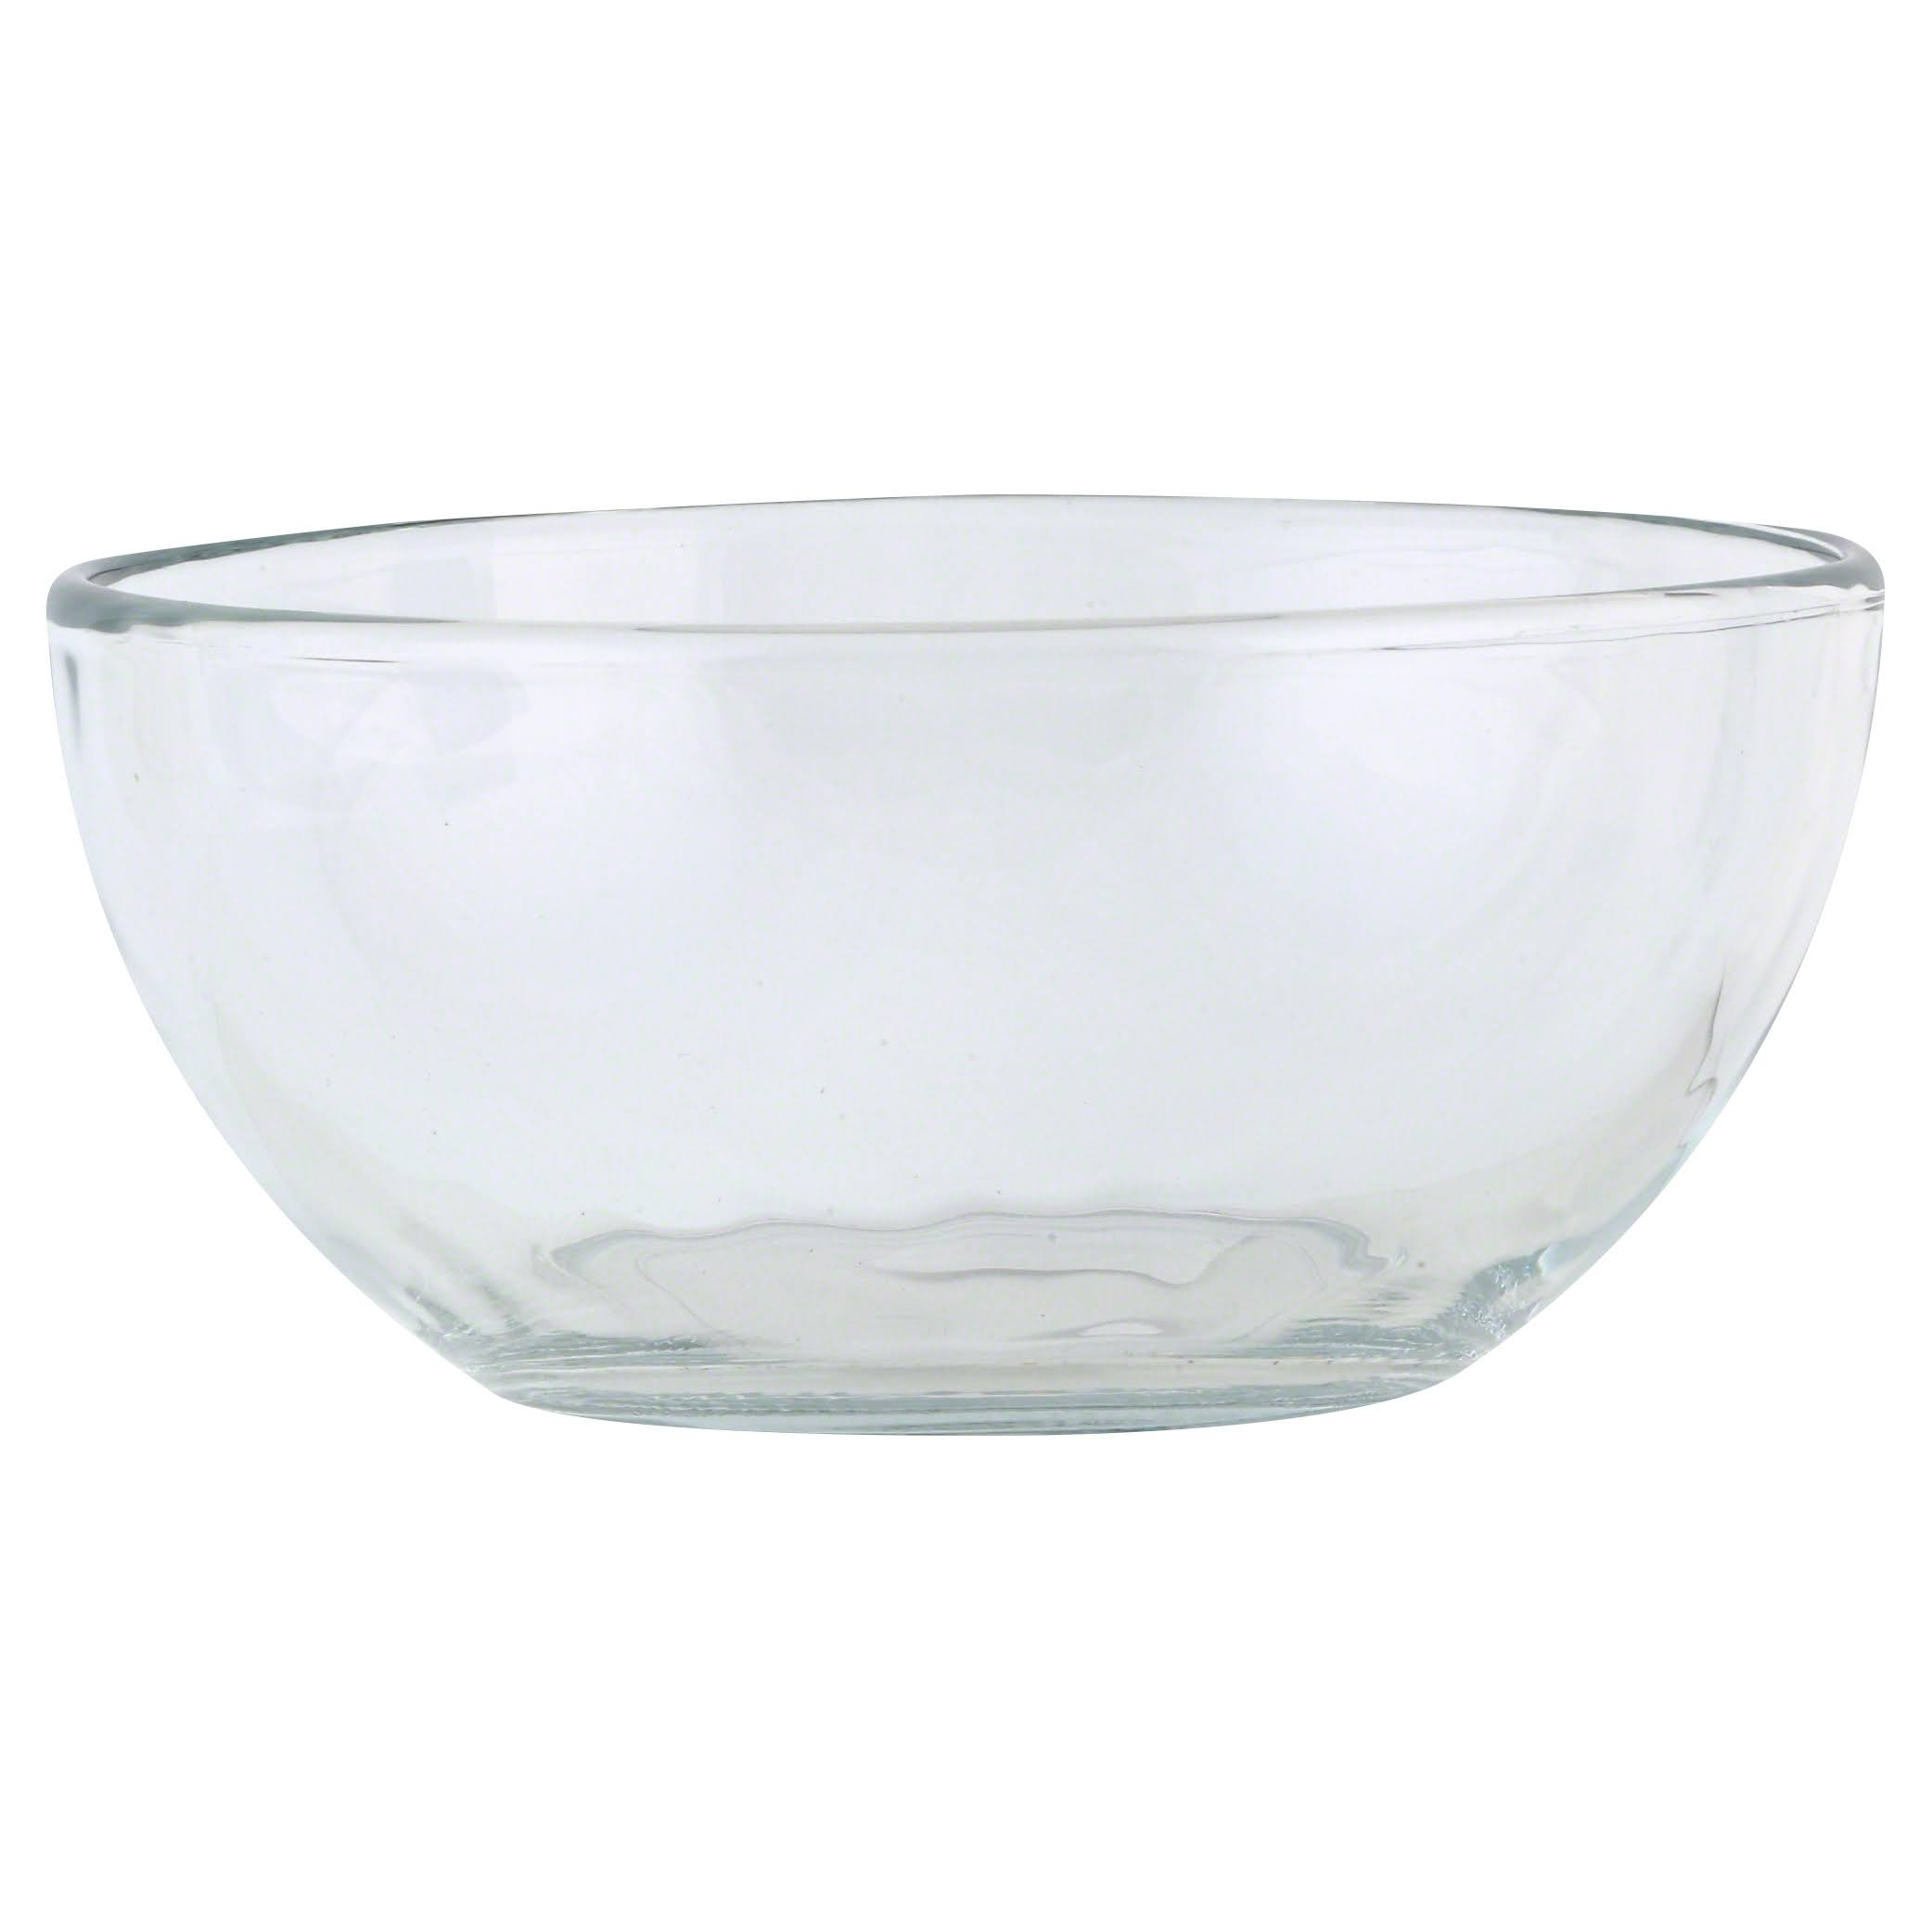 "Libbey Crisa Moderno Cereal Bowl - 6"", Box of 12, Clear"